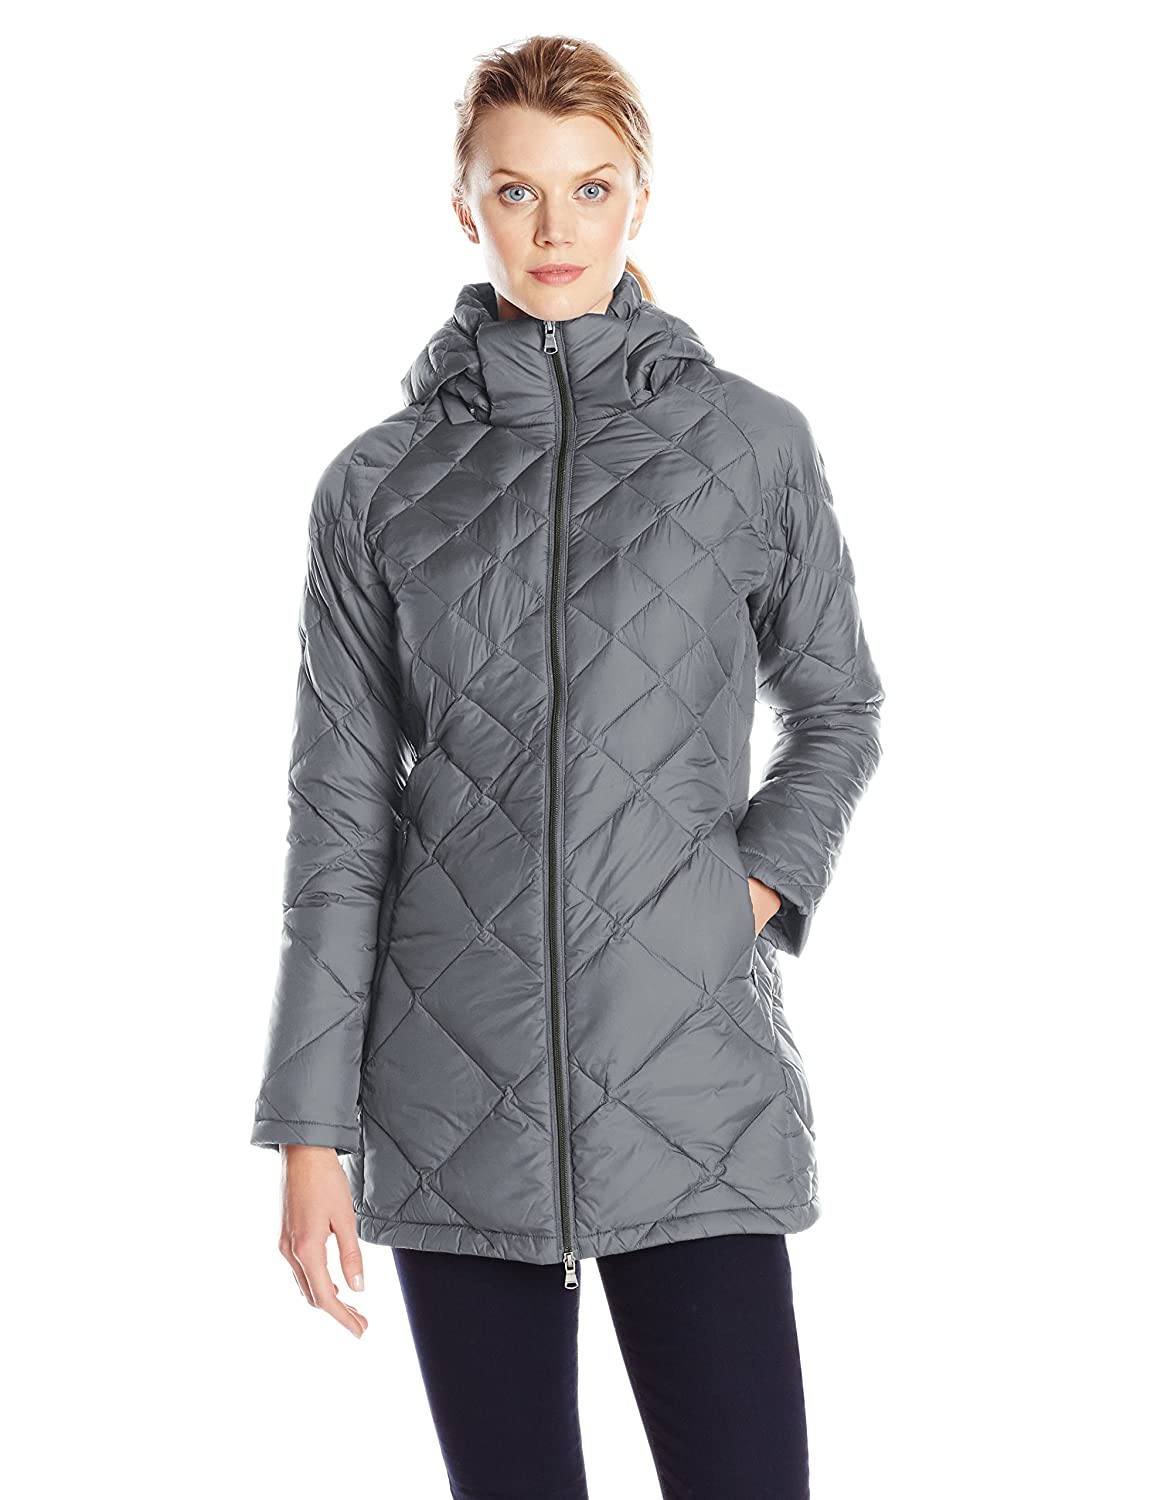 Charcoal Hawke & Co. Women's DiamondQuilted Packable Down Coat